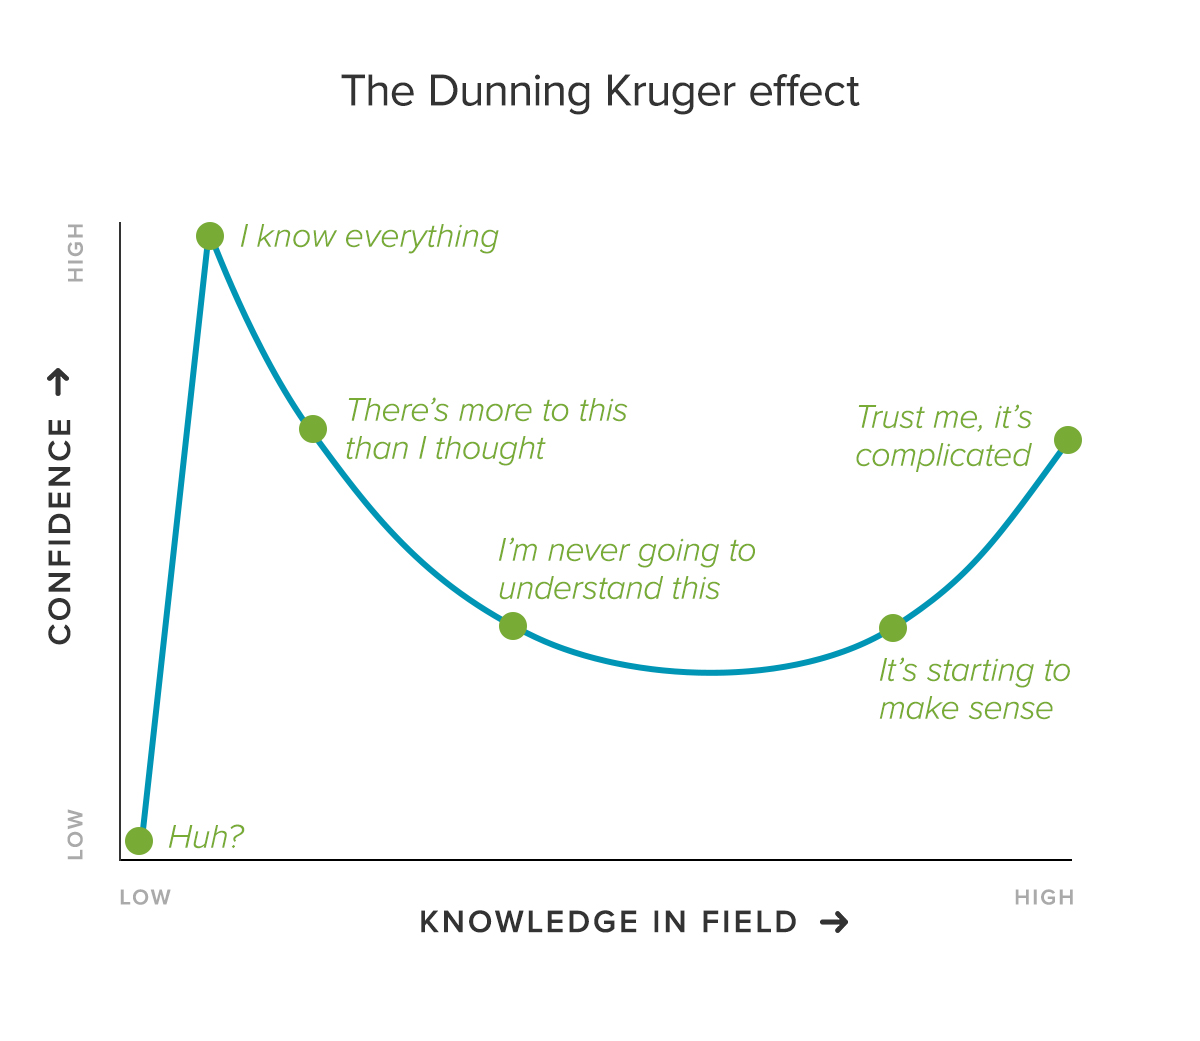 Dunning KrГјger